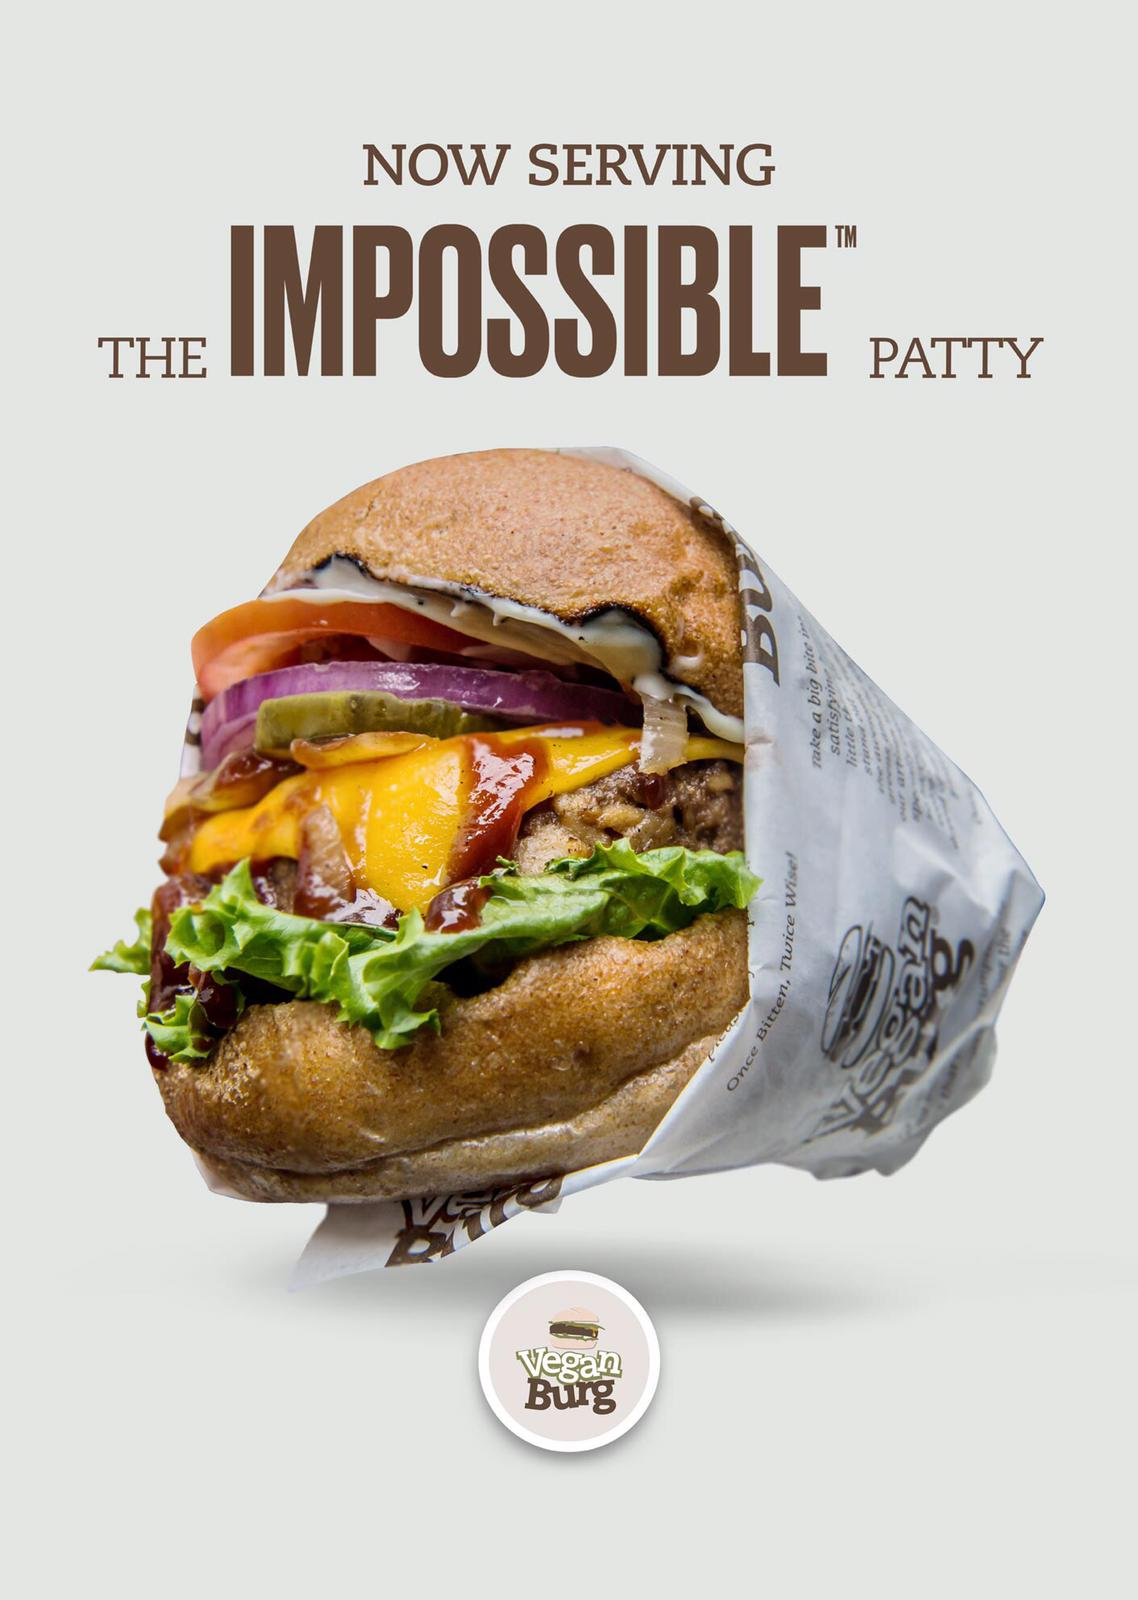 ImpossiblePatty.jpeg